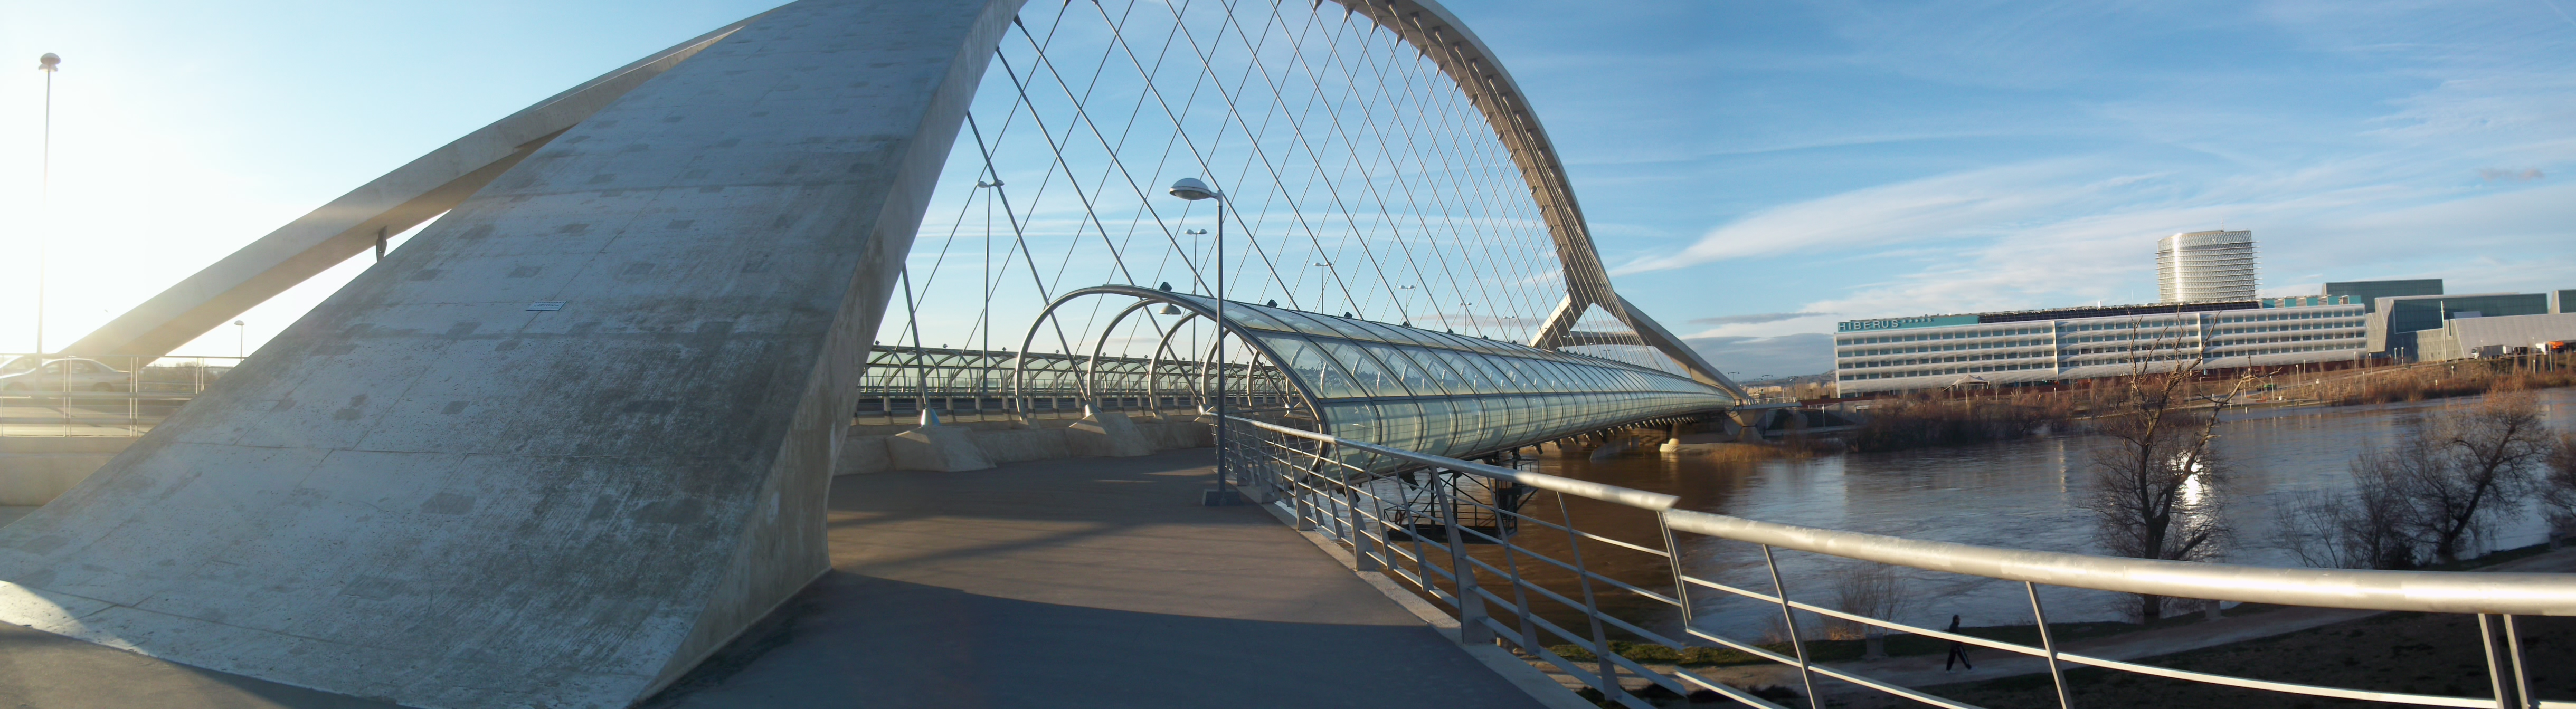 """""""The Bridge of the Third Millennium"""", constructed for the 2008 World Expo."""